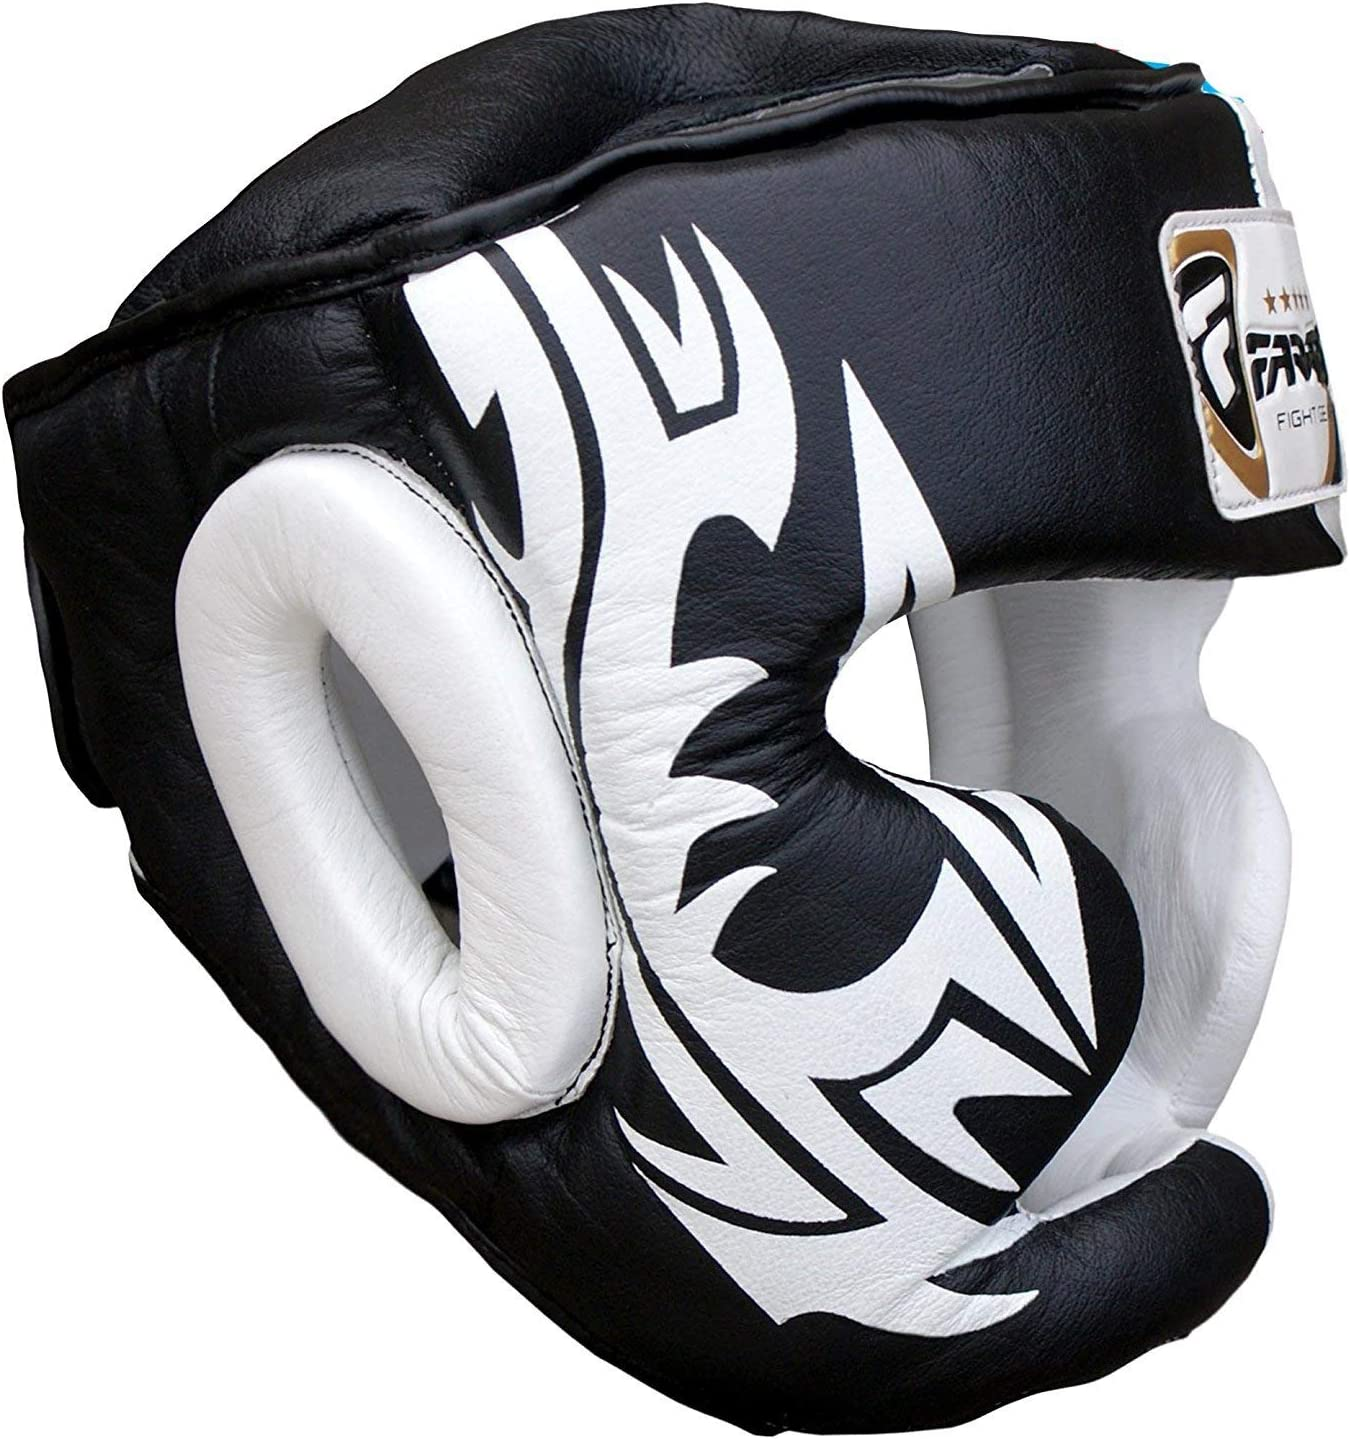 VELO Boxing Head Guard MMA Headguard Kickboxing Adult Sparring mma Protection